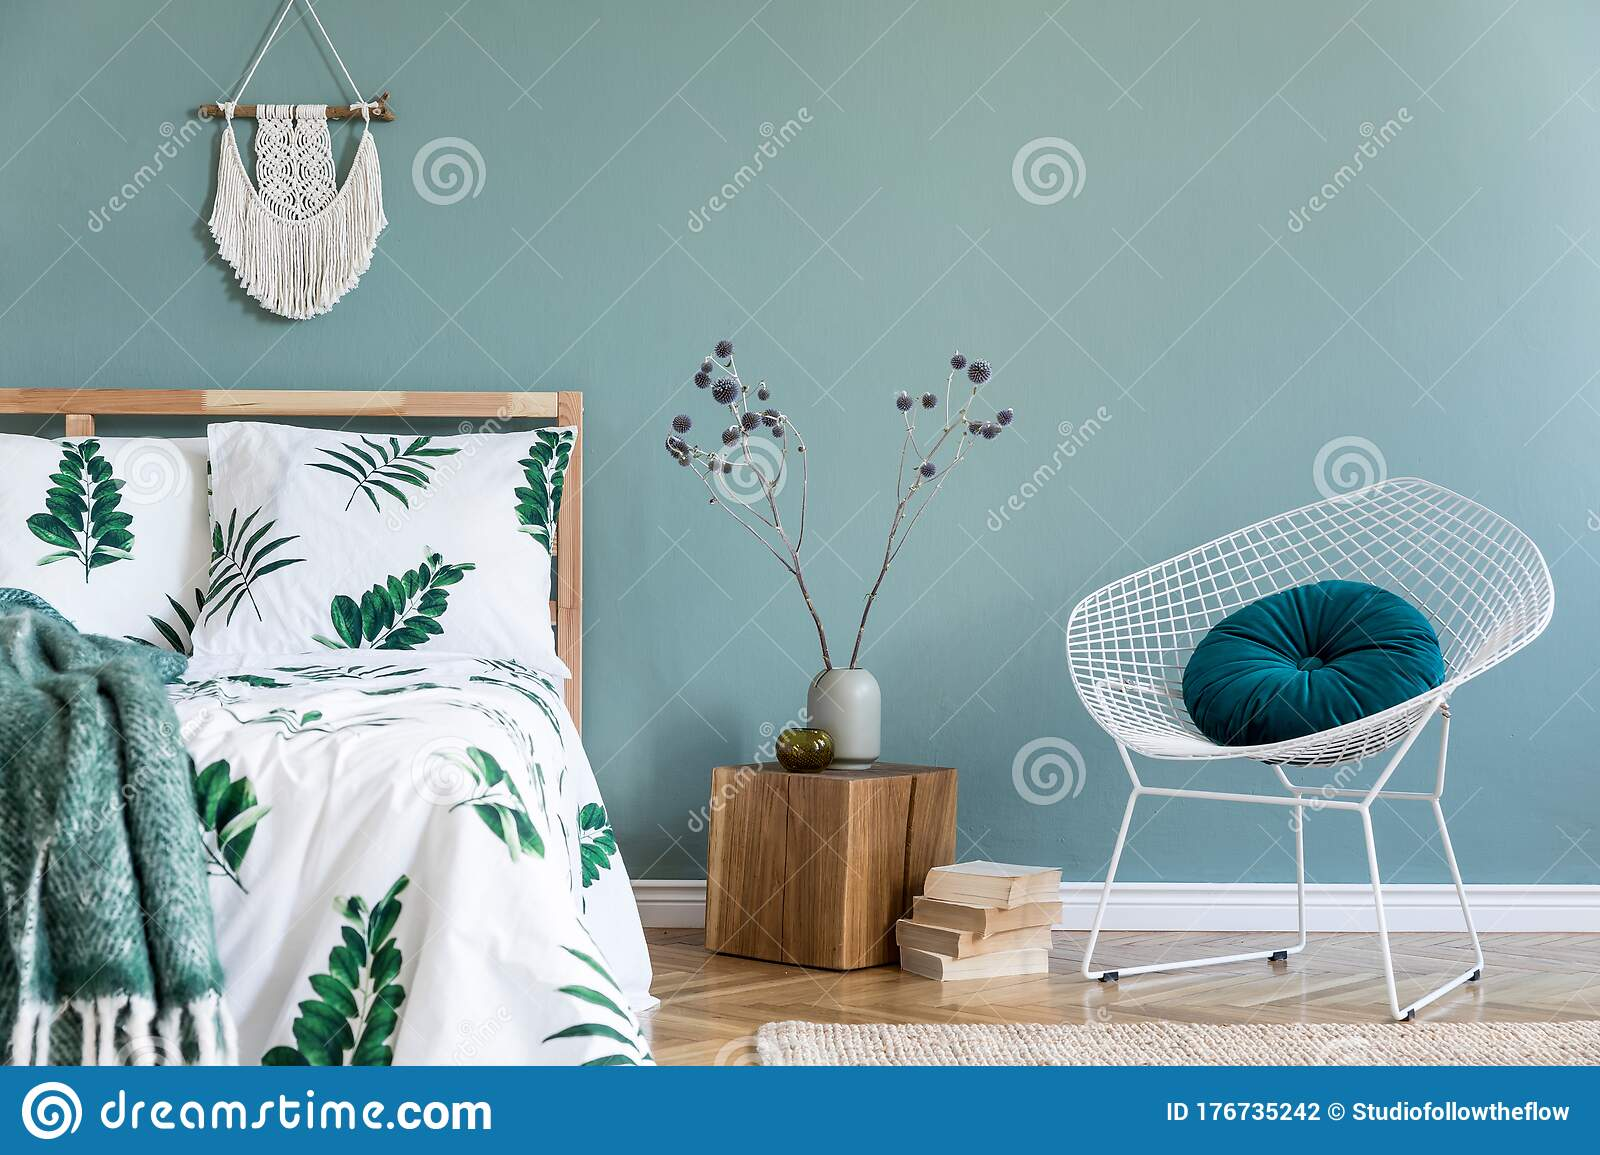 Cosy Boho Bedroom Interior With Wooden Bed And White Armchair Stock Photo Image Of Bohemian Concept 176735242